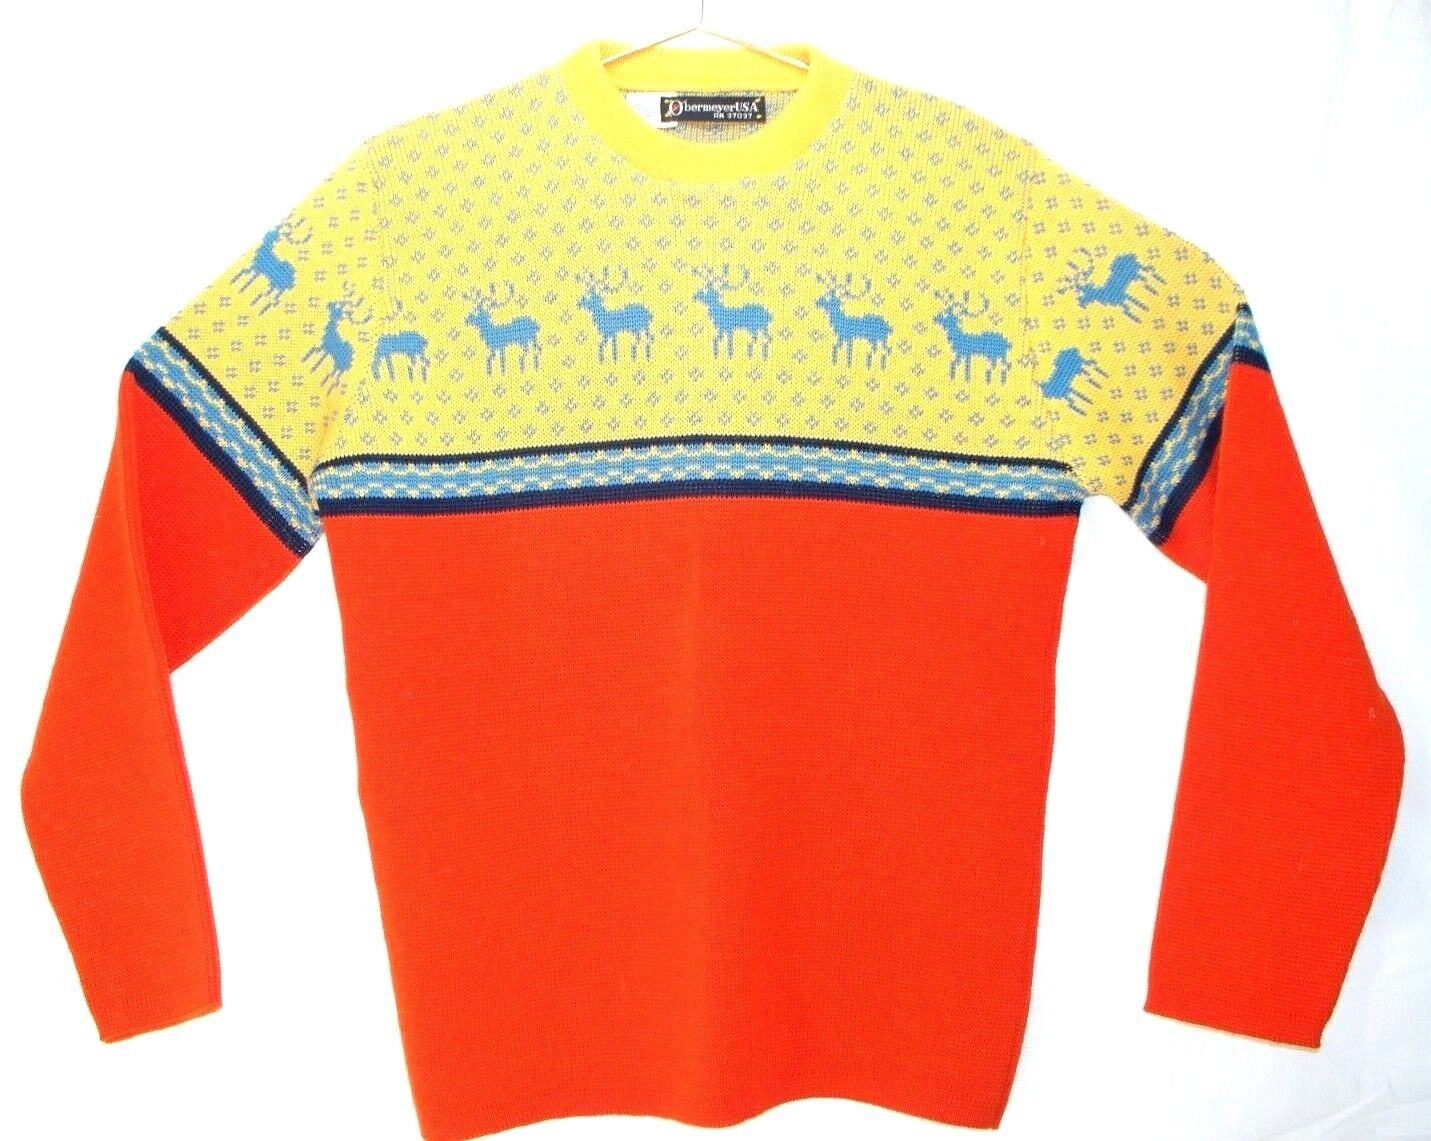 Obermeyer VTG Sweater Perfect for the après party Men's M M M 1960's or 70's fc7013